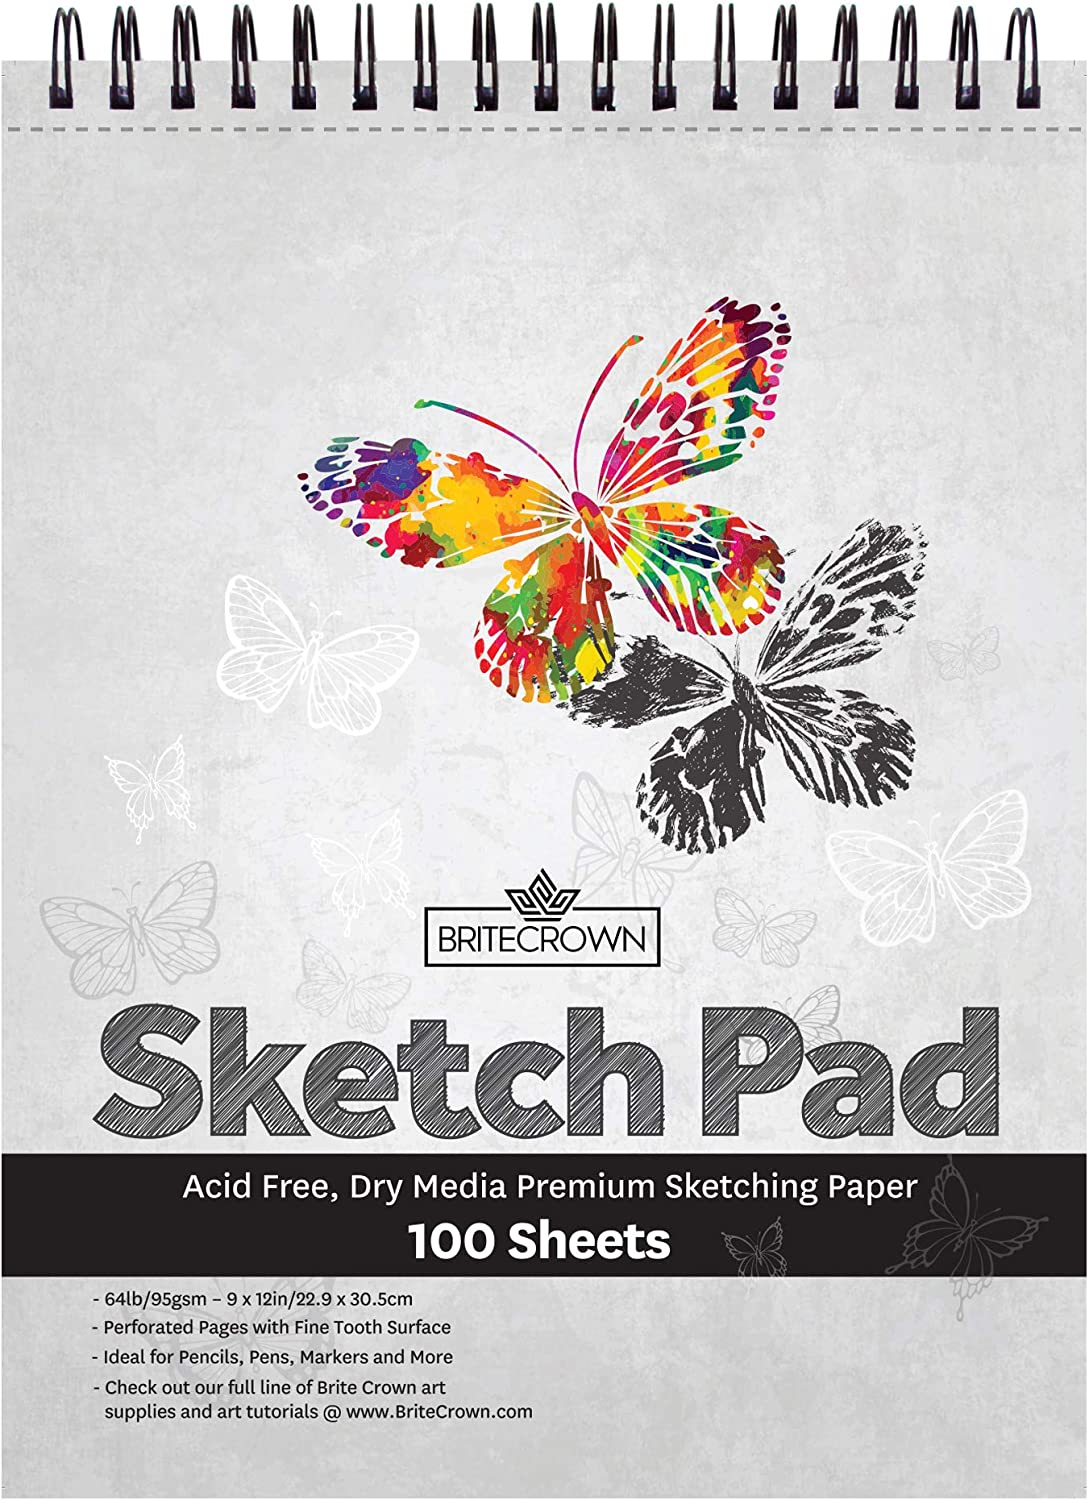 Markers Pens Sketch Pad 9 x 12-100 Sheets Acid Free Drawing Paper Perforated Sketchbook Art Paper for Pencils Brite Crown Sketch Book Charcoal and Dry Media Pastels 64lb//95gsm